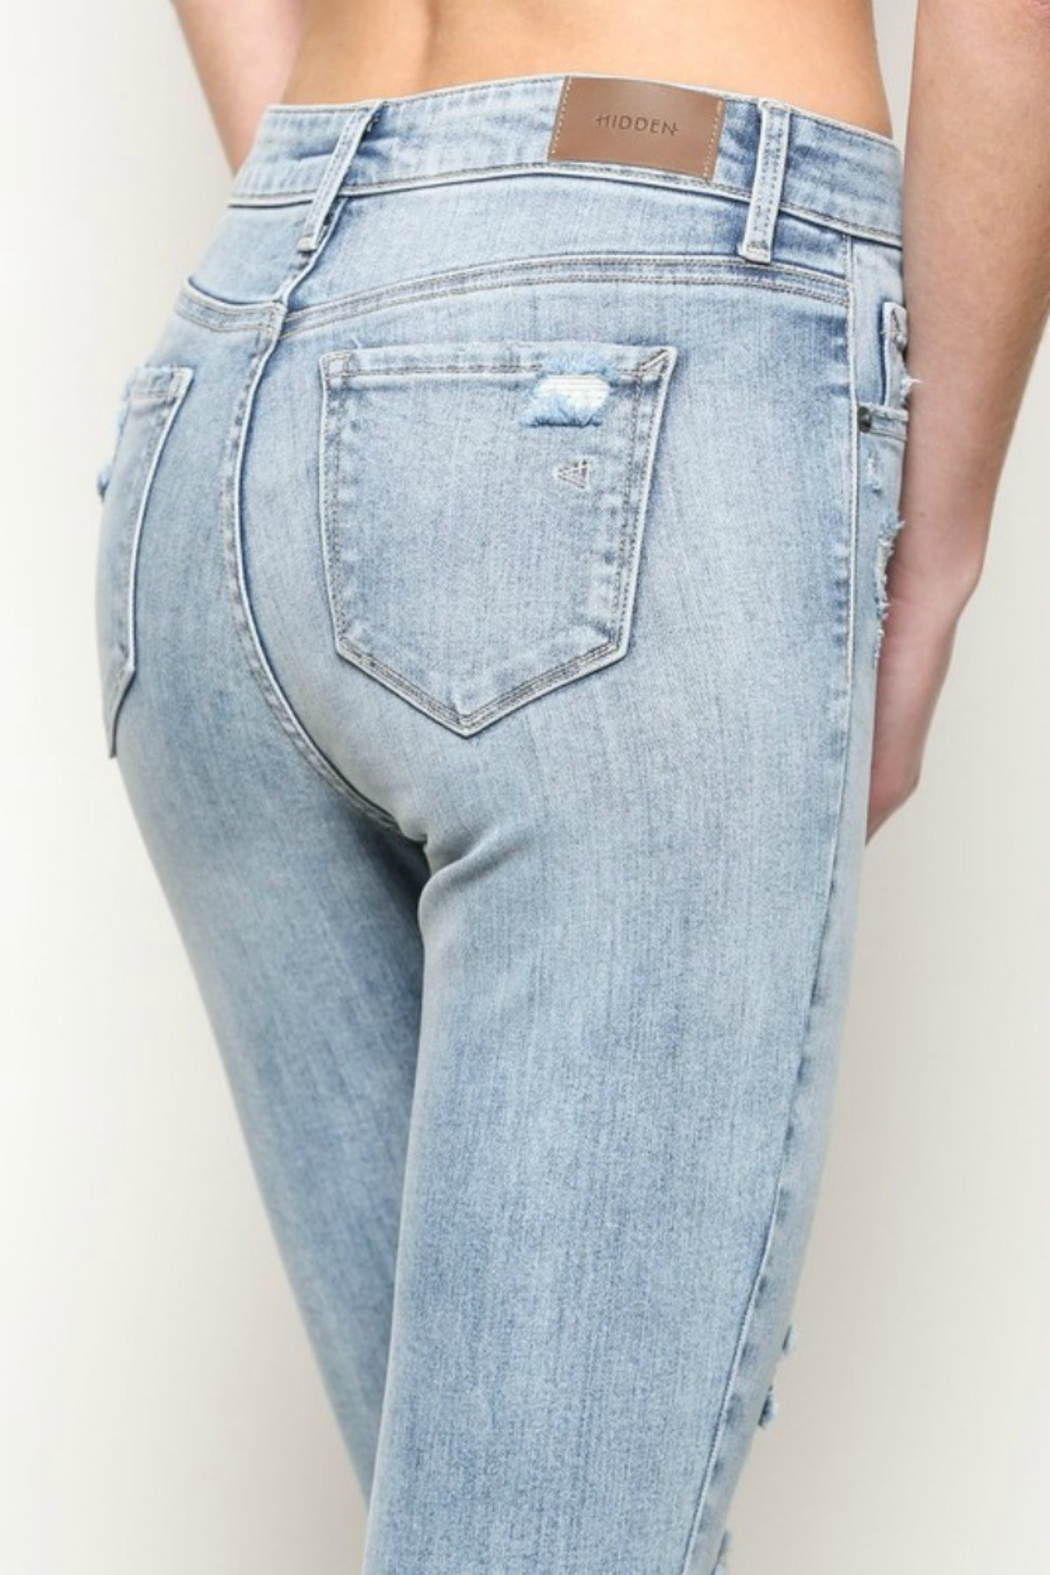 Hidden Jeans TAYLOR HIGH RISE - Back Cropped Image